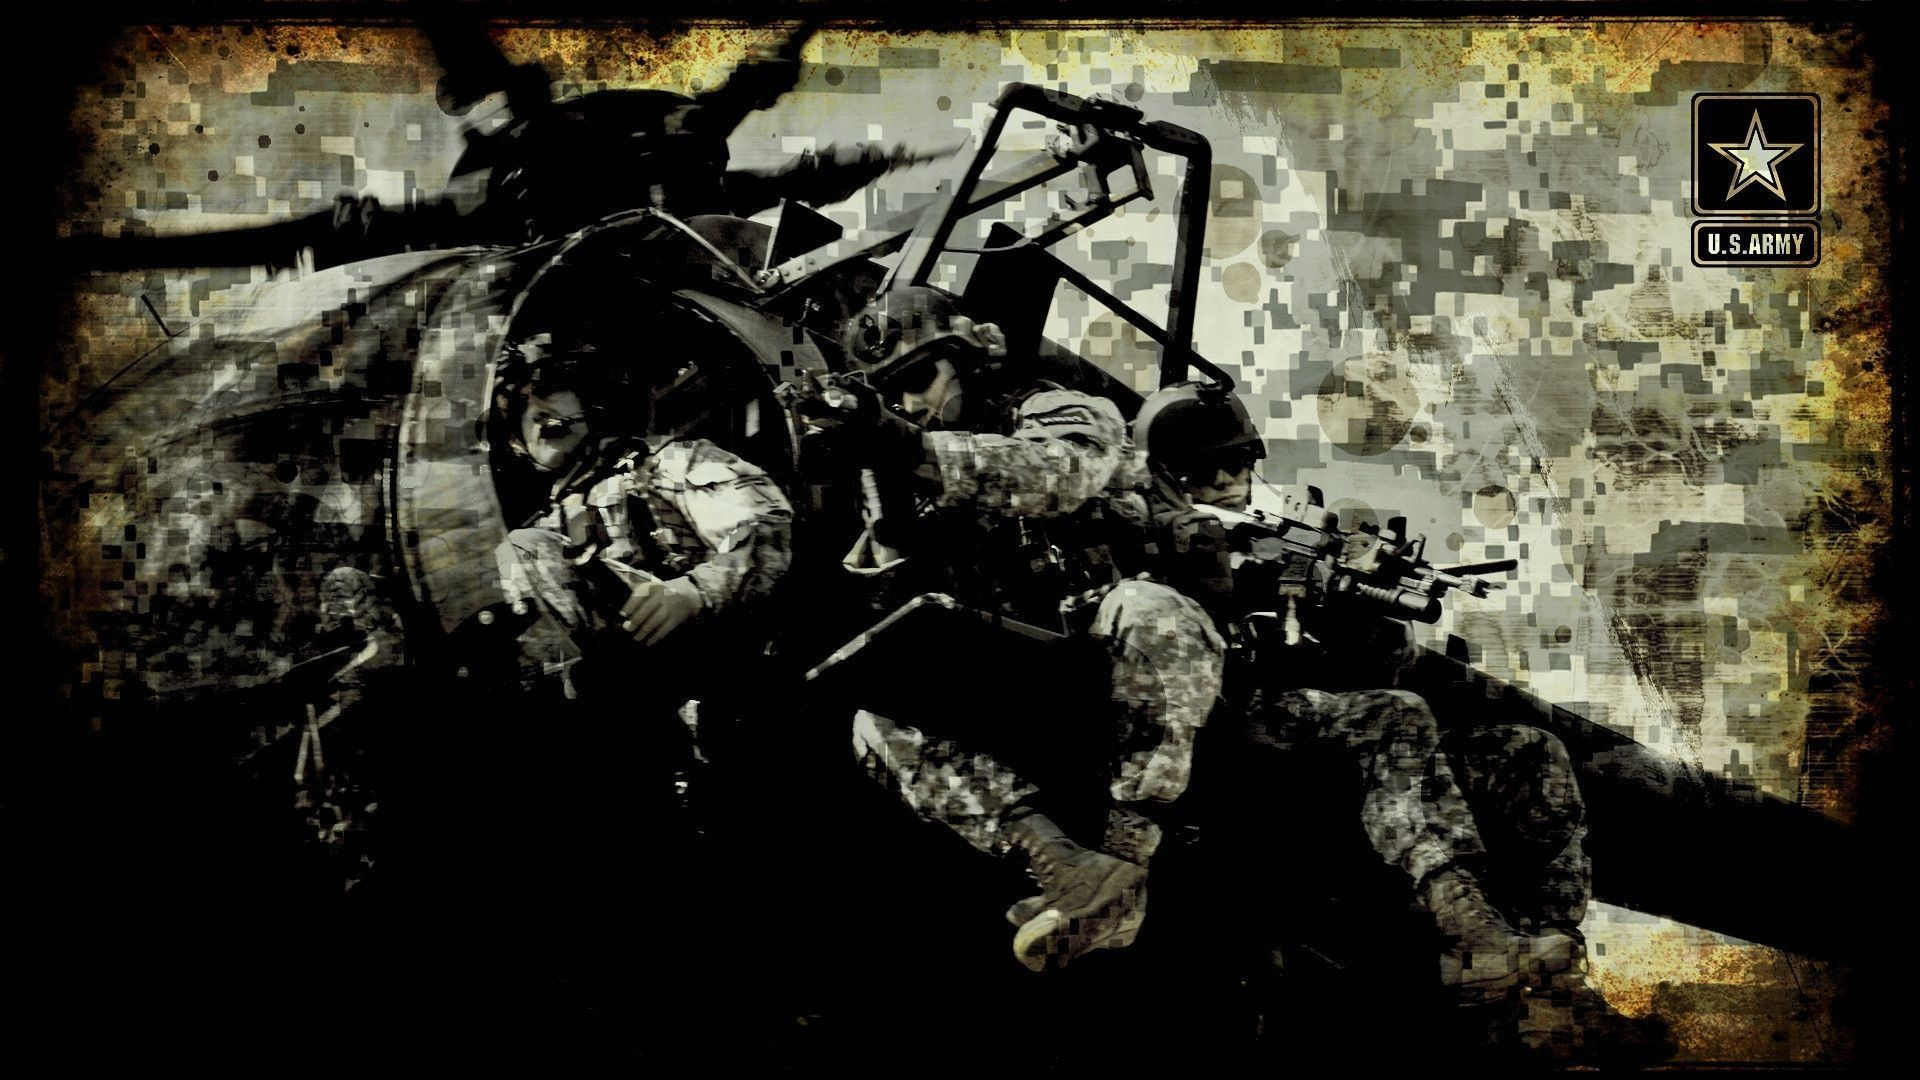 1920x1080 Us Army Infantry Wallpaper